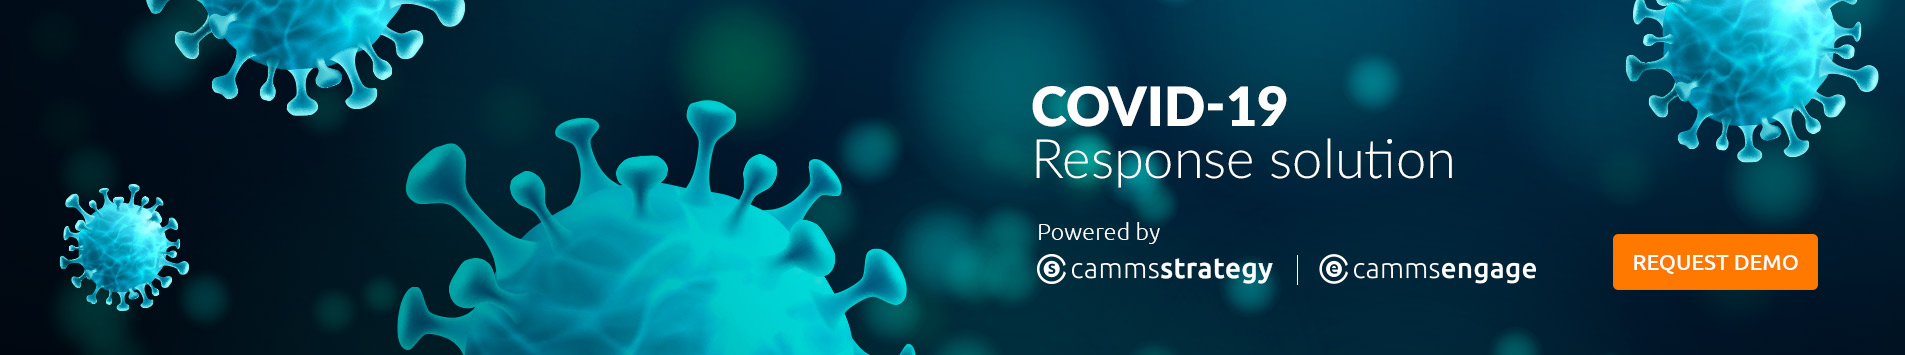 Your COVID-19 Response Solution